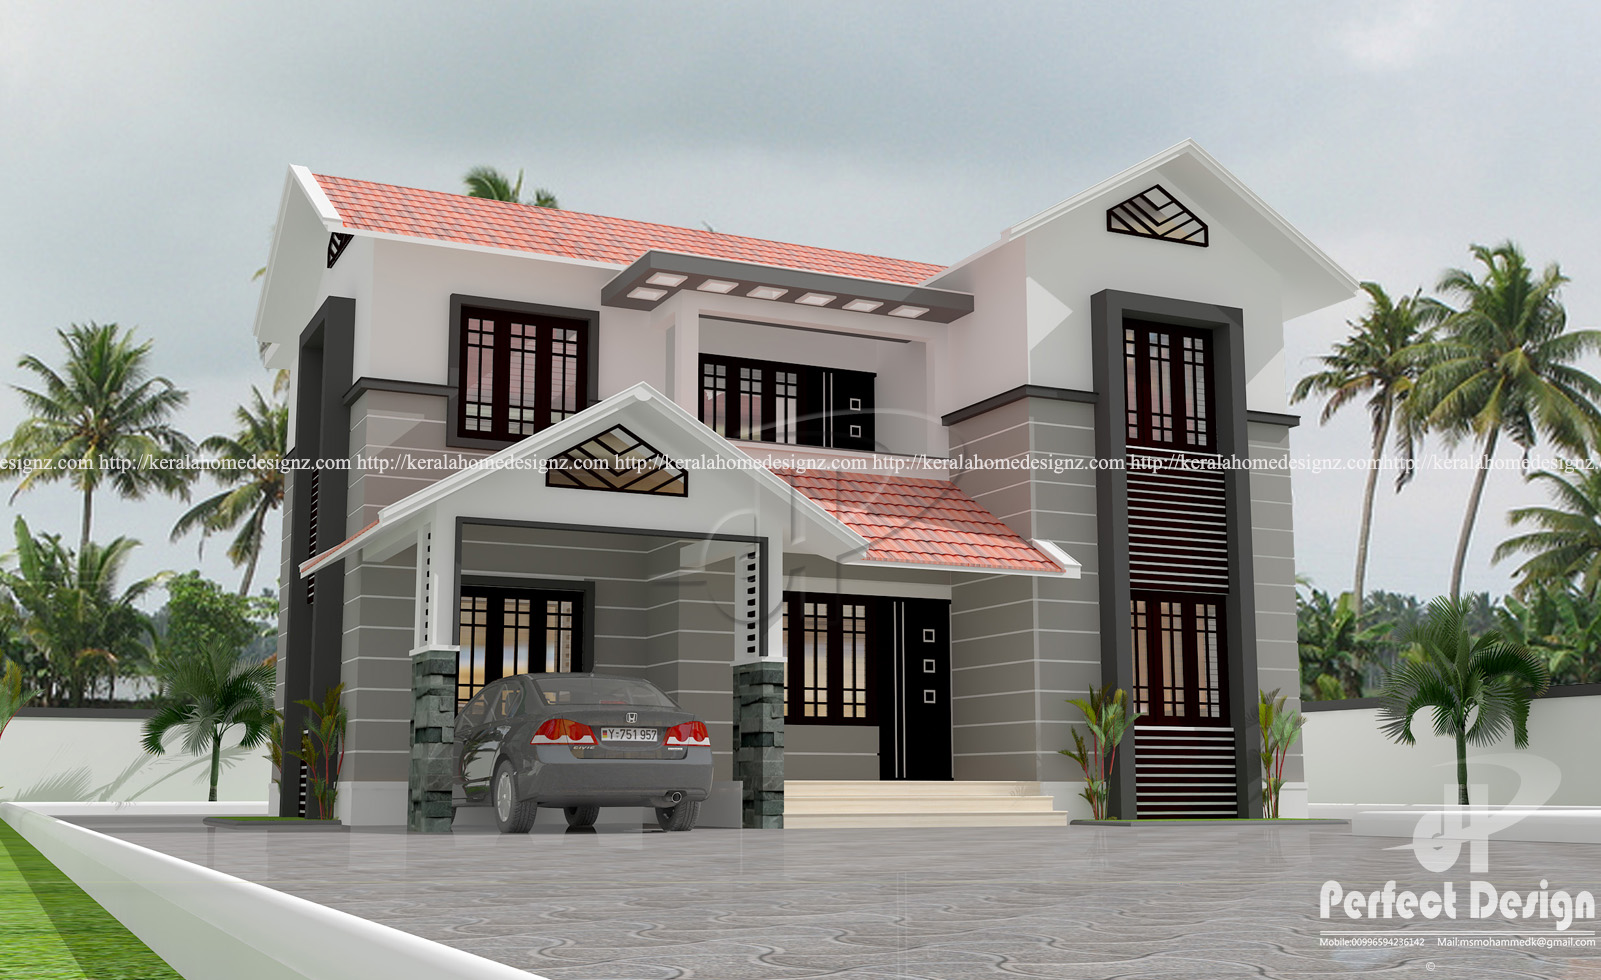 Ordinary 4 Bedroom Mixed Roof Home Part - 4: Mixed Roof 4 Bedroom Modern Residence